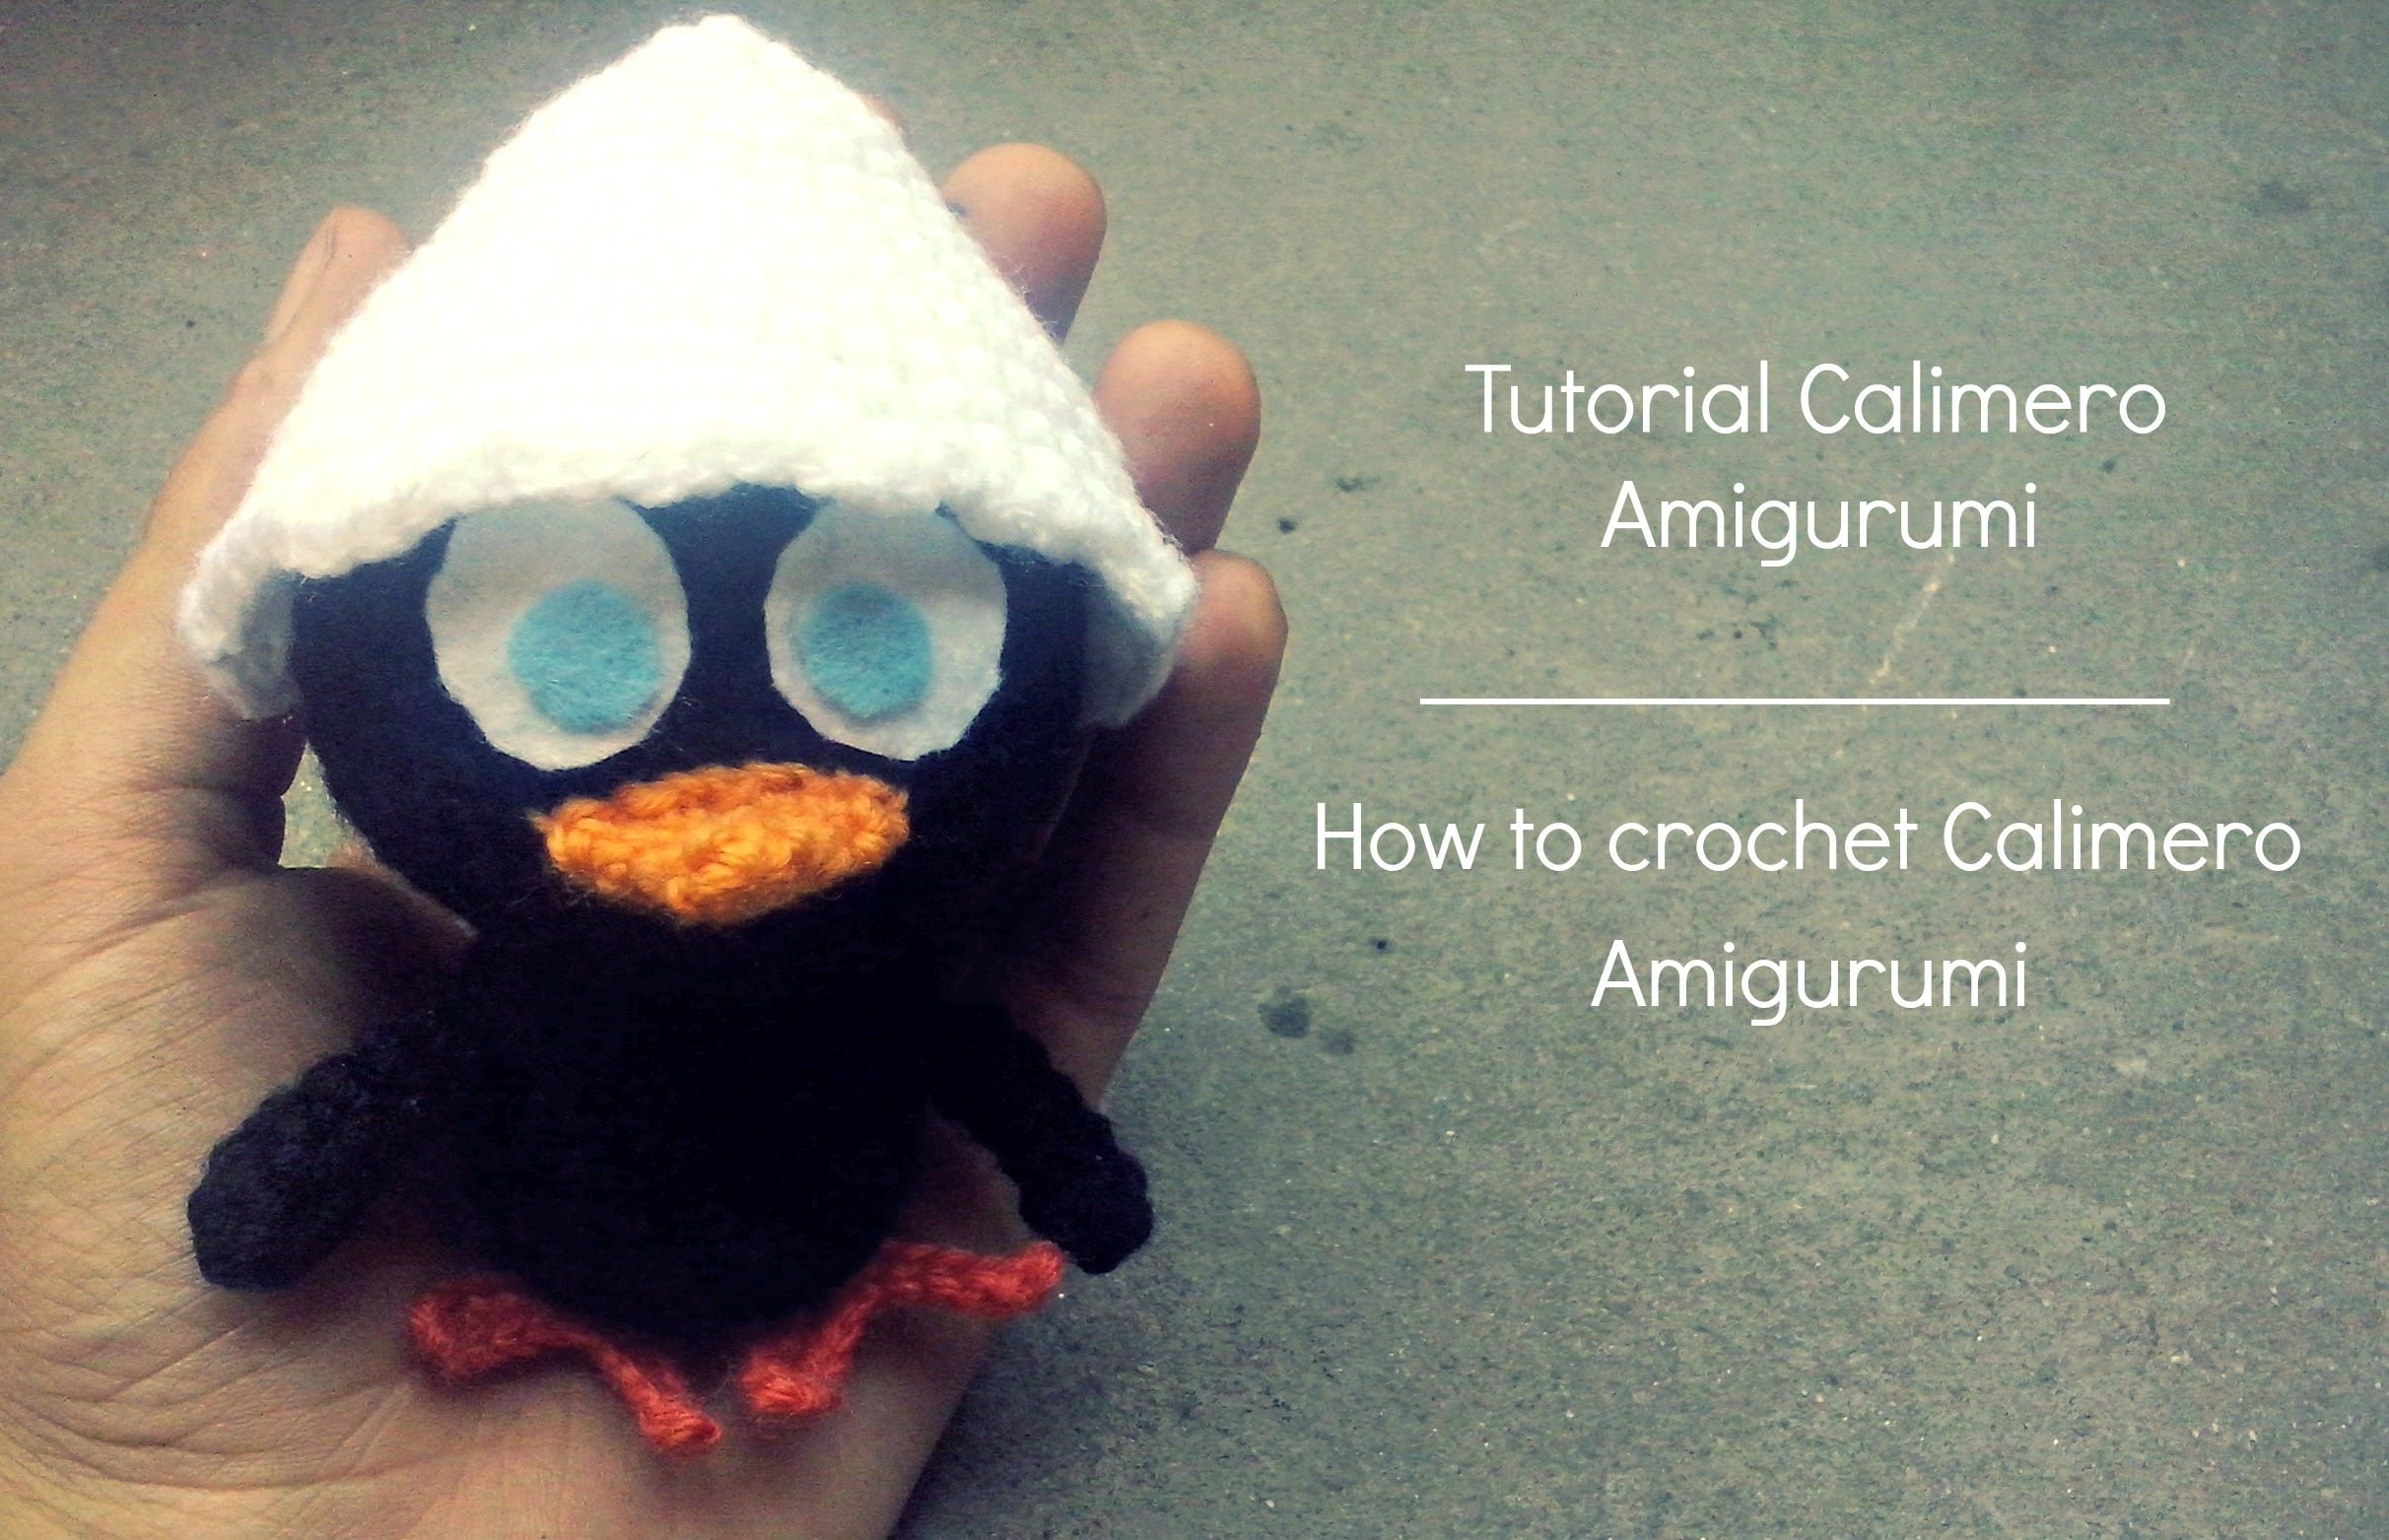 Tutorial Calimero Amigurumi | How to crochet Calimero Amigurumi ...